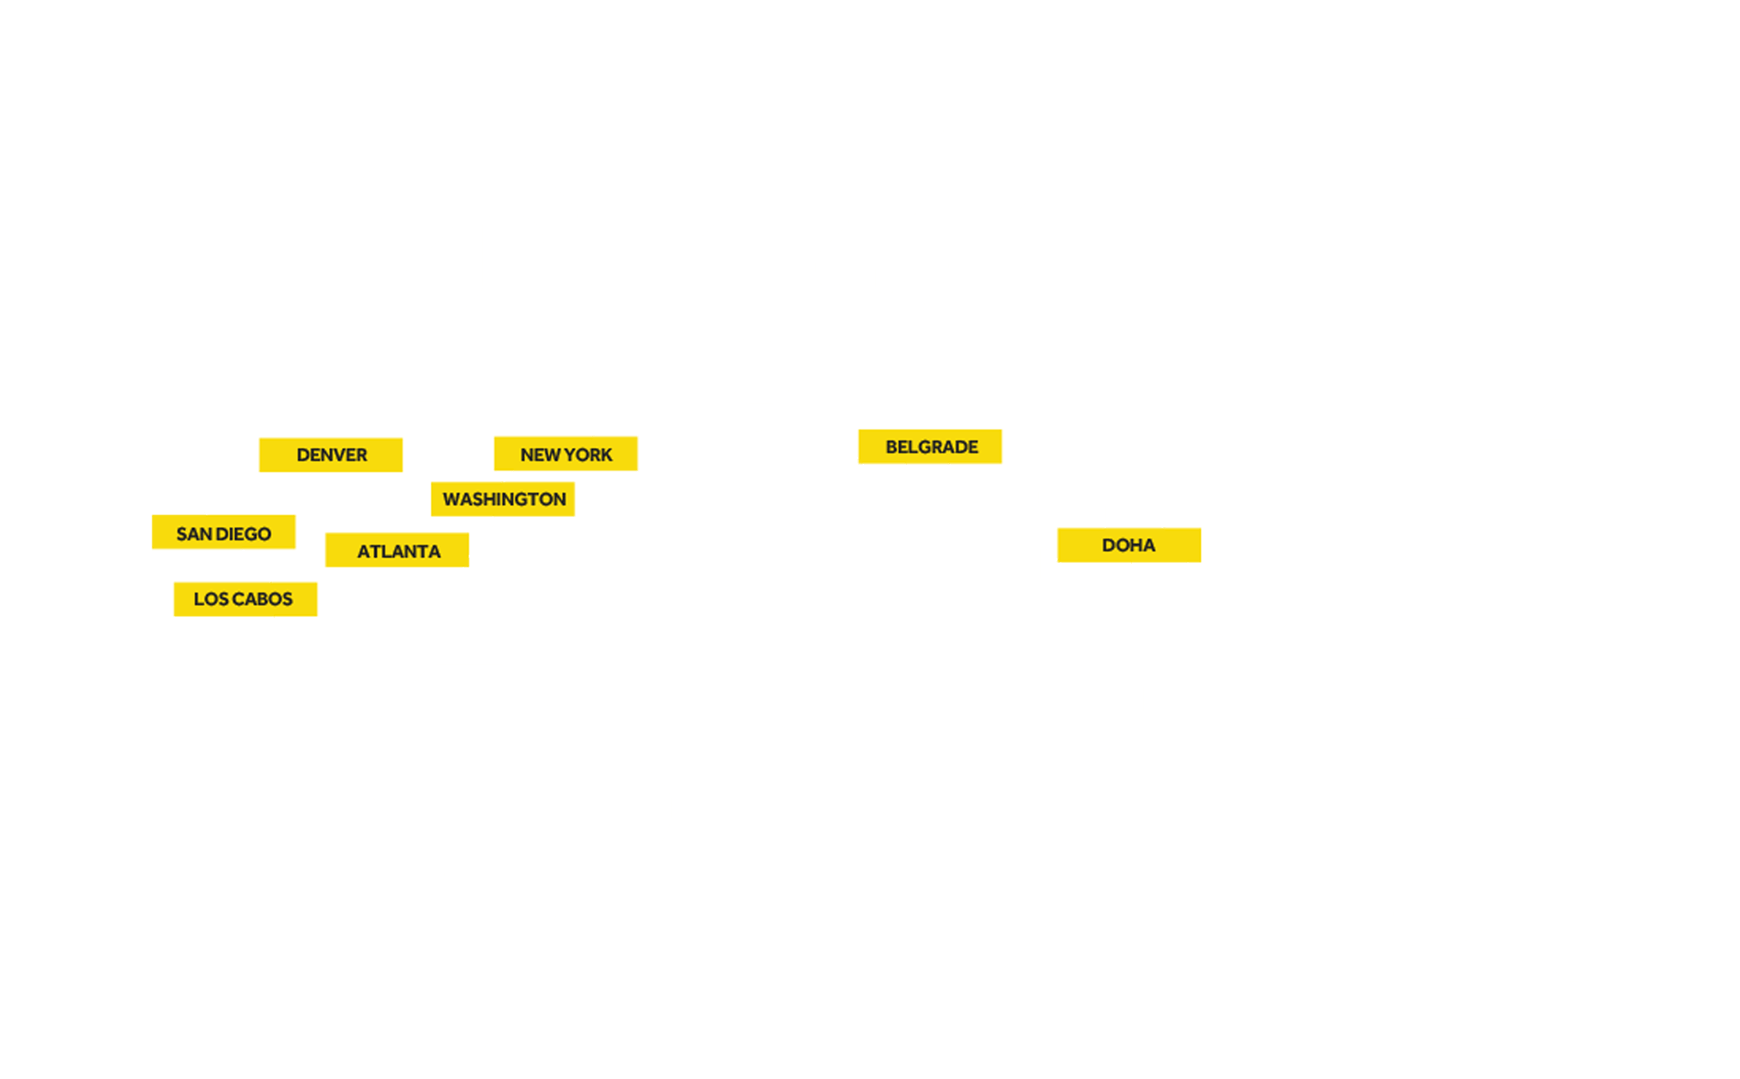 24/7 with our clients around the world